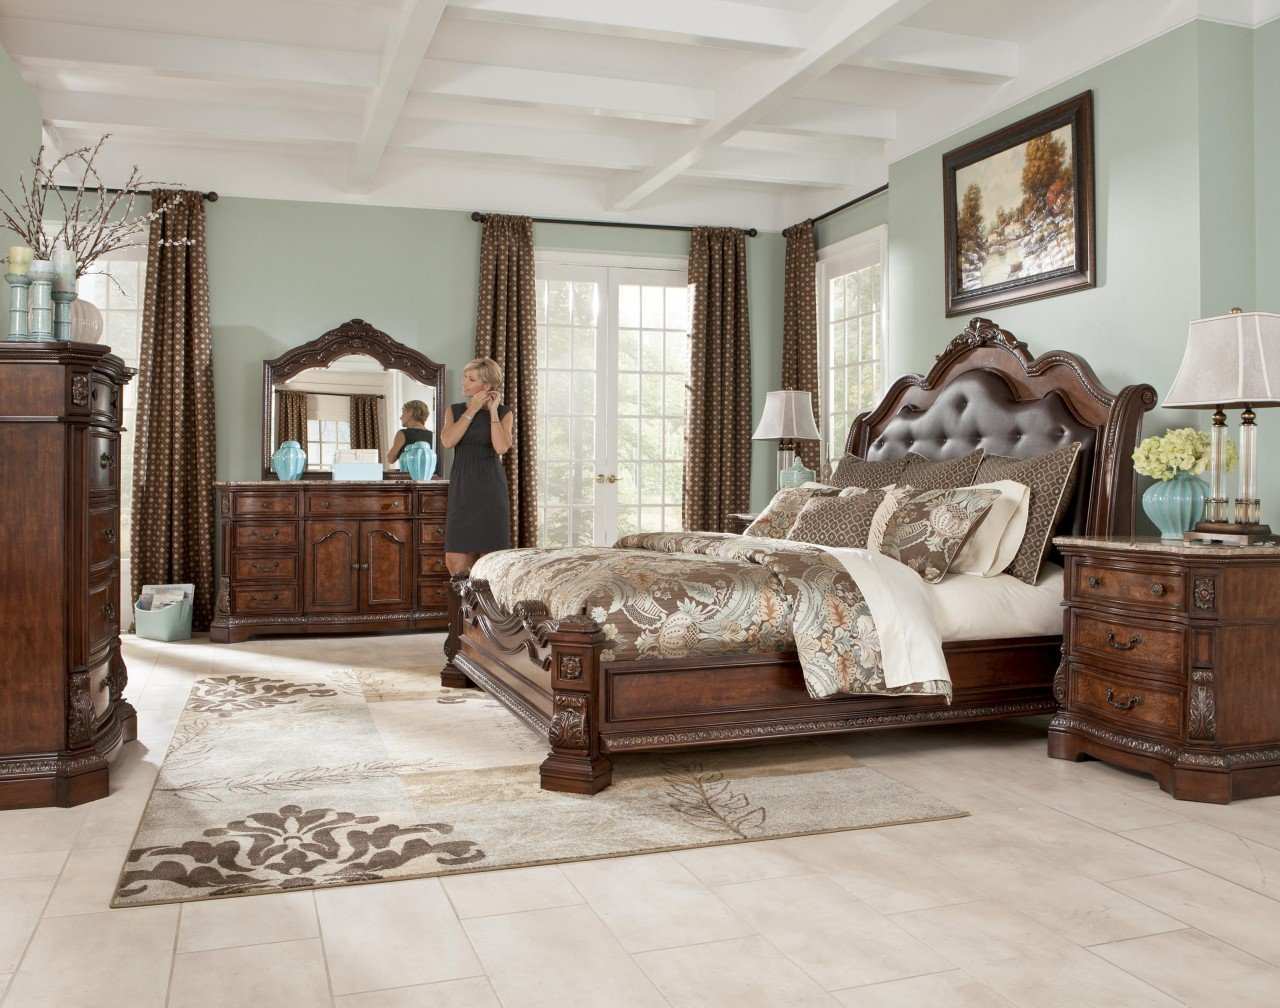 King sleigh bed bedroom sets home furniture design for King sleigh bed bedroom sets